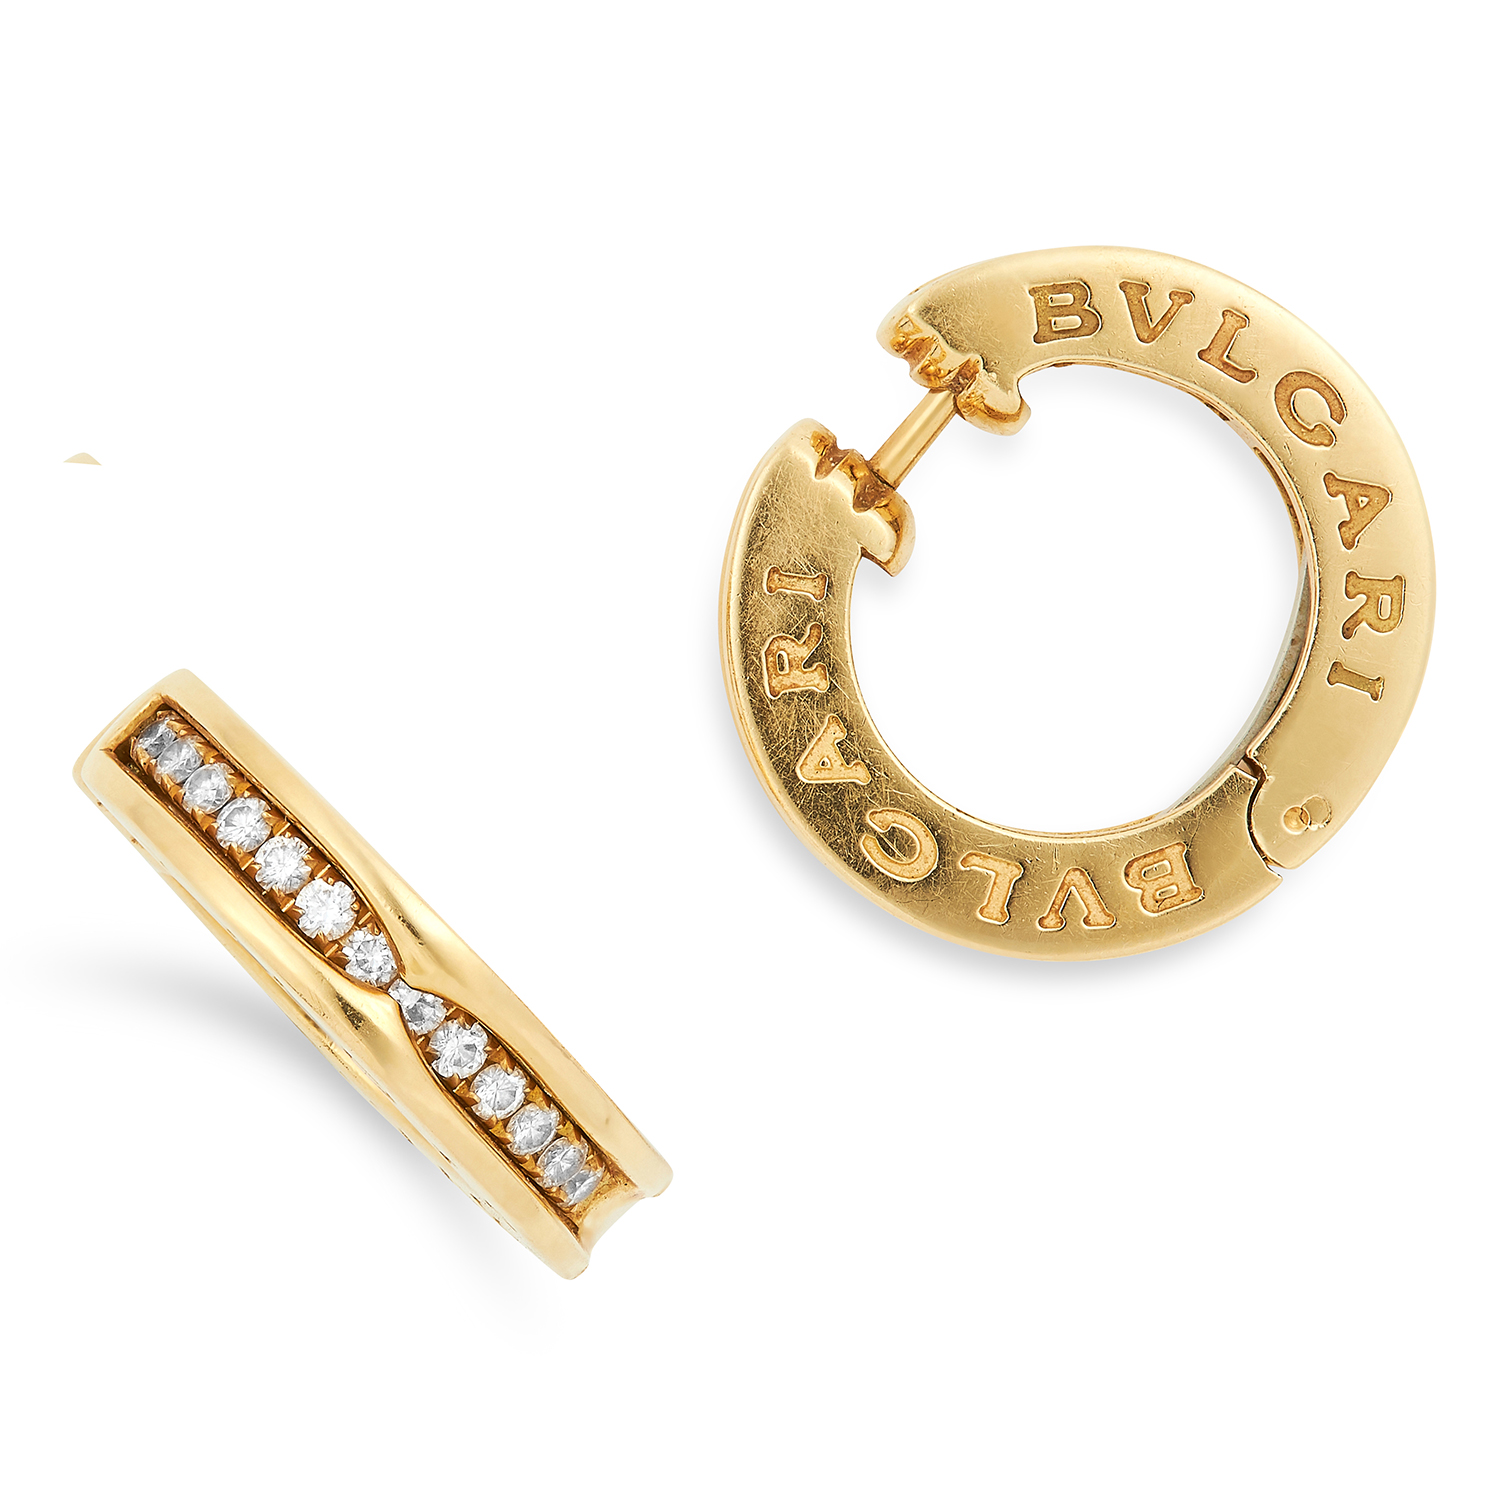 A PAIR OF DIAMOND B.ZERO1 HOOP EARRINGS, BULGARI the hoops set with round cut diamonds, signed